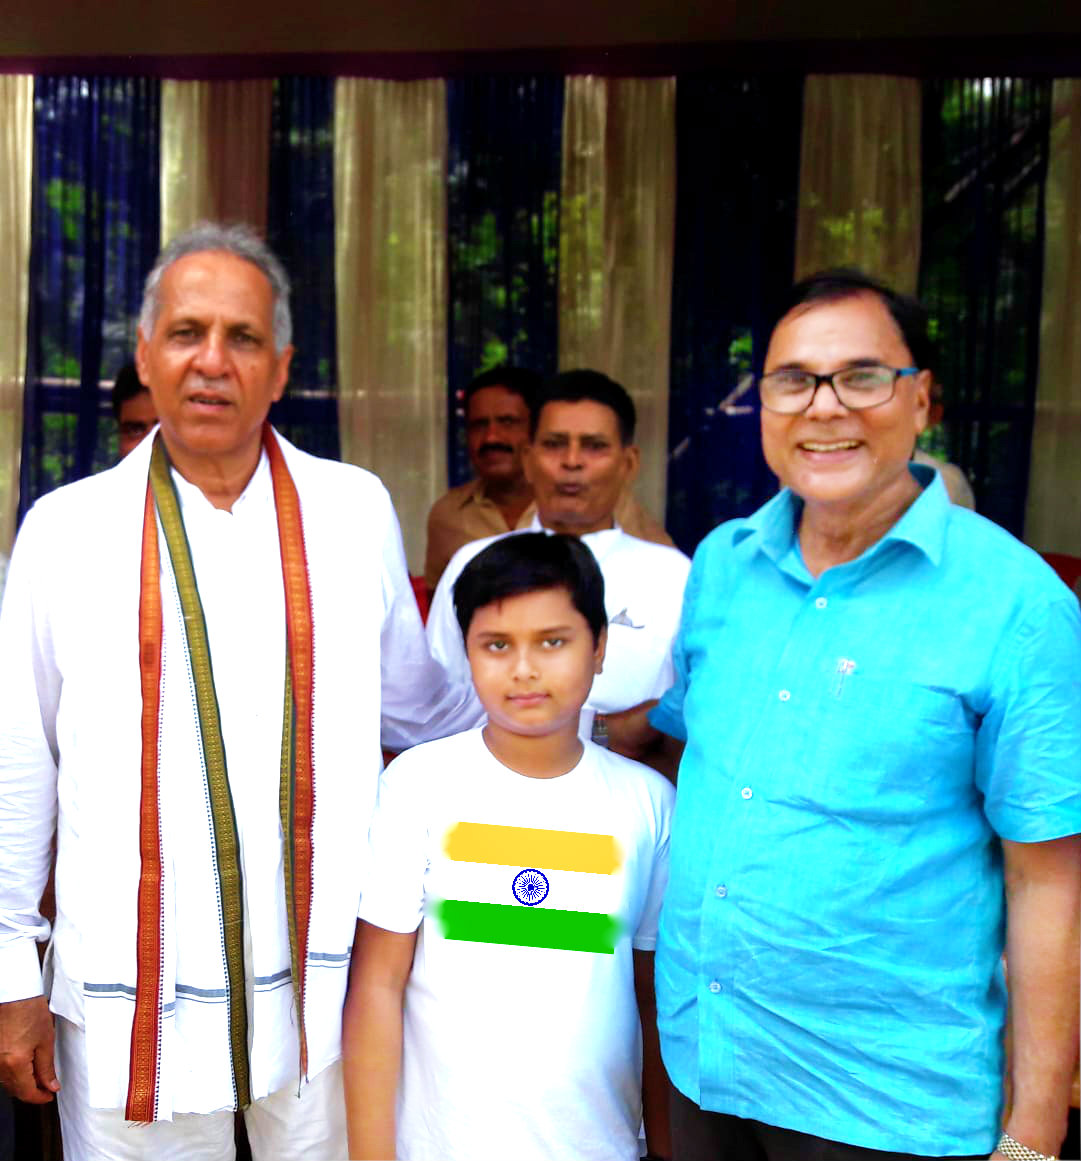 Dr.Bhupendra Narayan Madhepuri along with his grand son Aditya & Vice-Chancellor Dr.Awadh Kishor Ray Celebrating Independence Day at BNMU Campus.